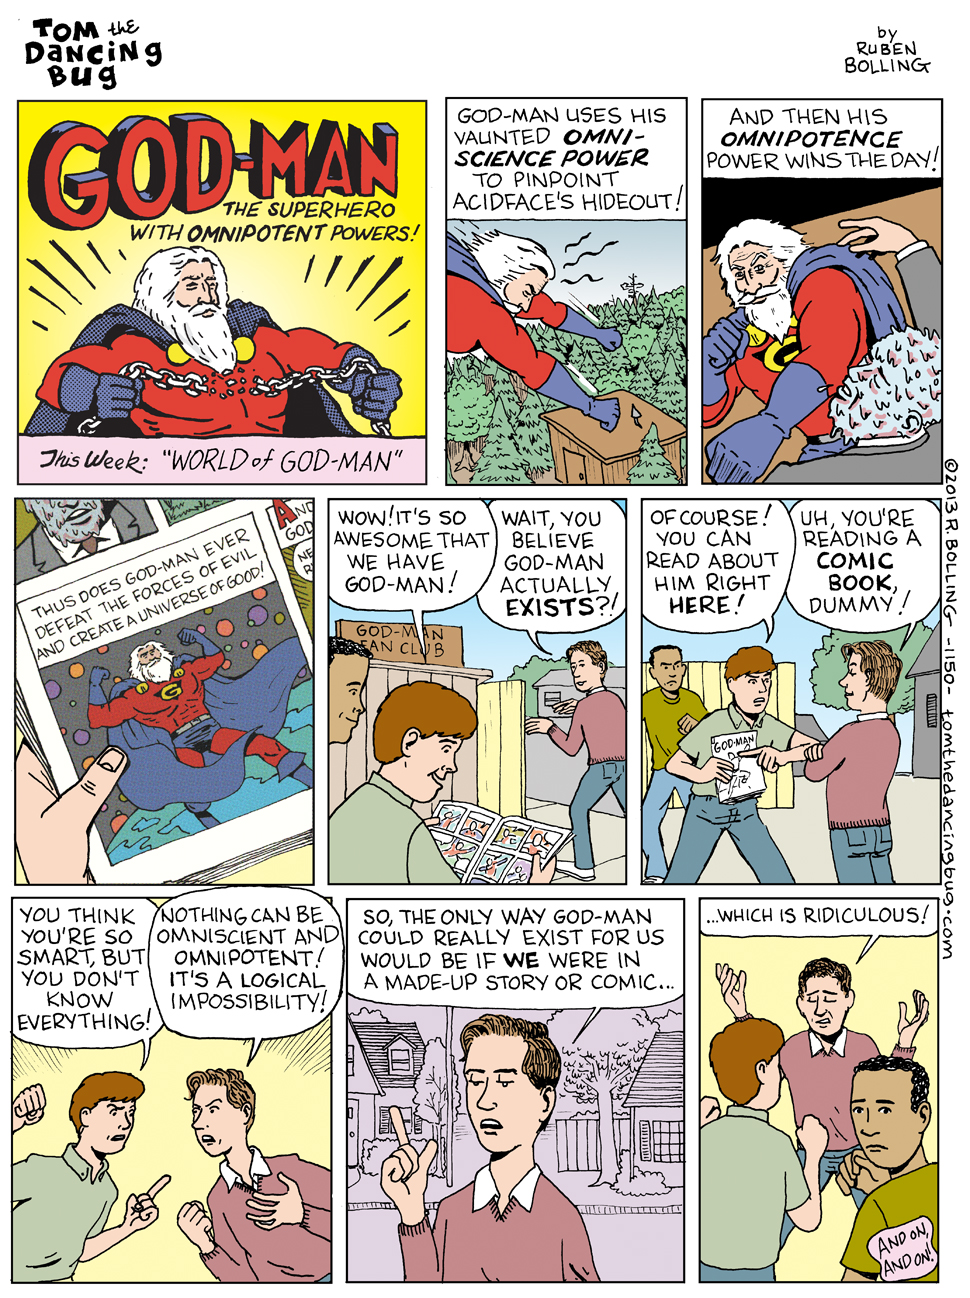 http://media.boingboing.net/wp-content/uploads/2013/08/1150cbCOMIC-gm-world-of-god-man.jpg